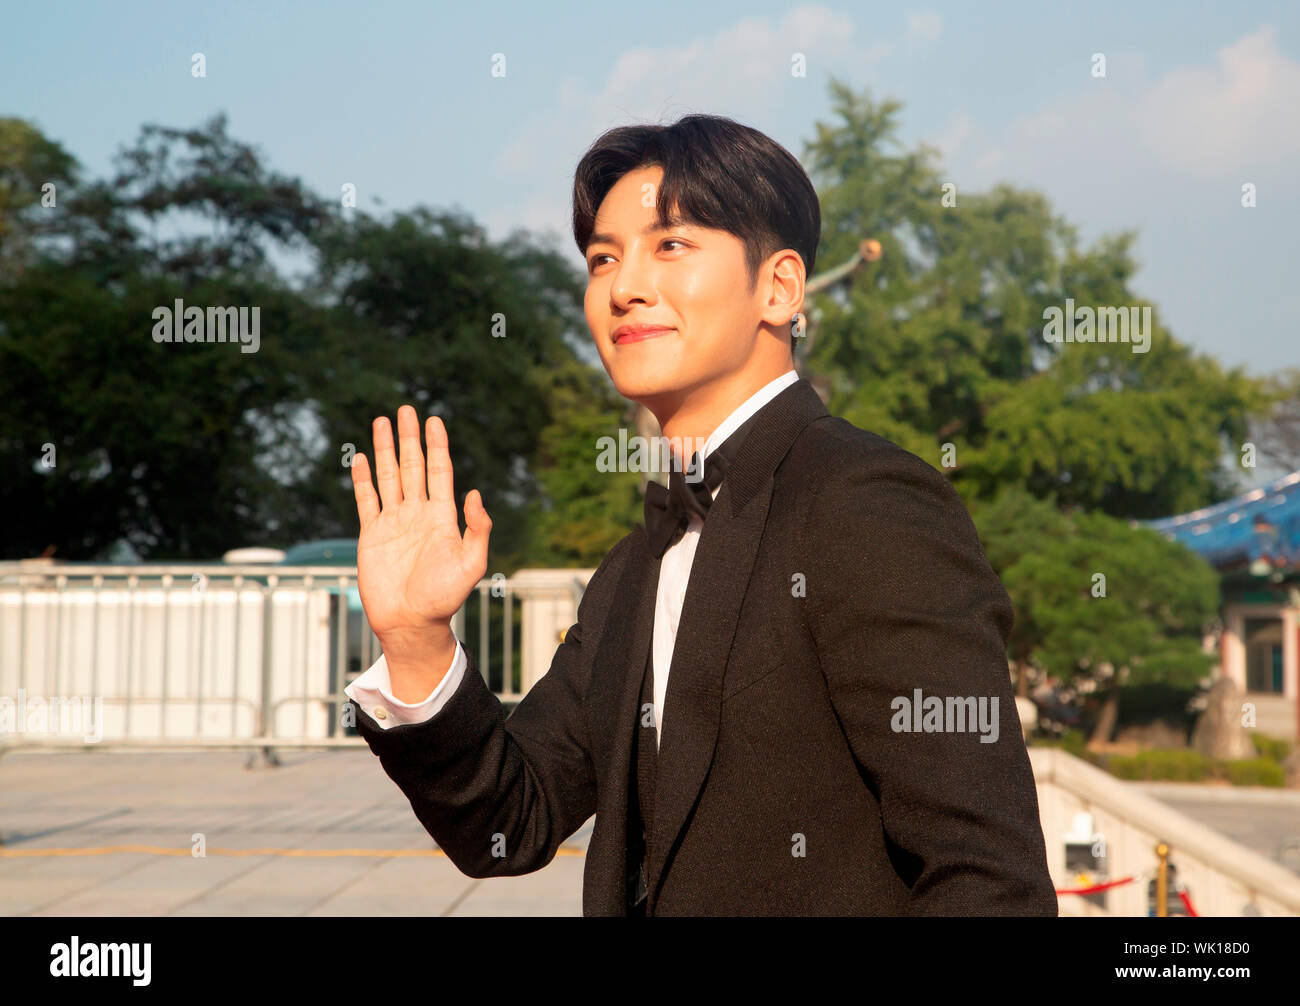 Ji Chang Wook Stock Photos & Ji Chang Wook Stock Images - Alamy